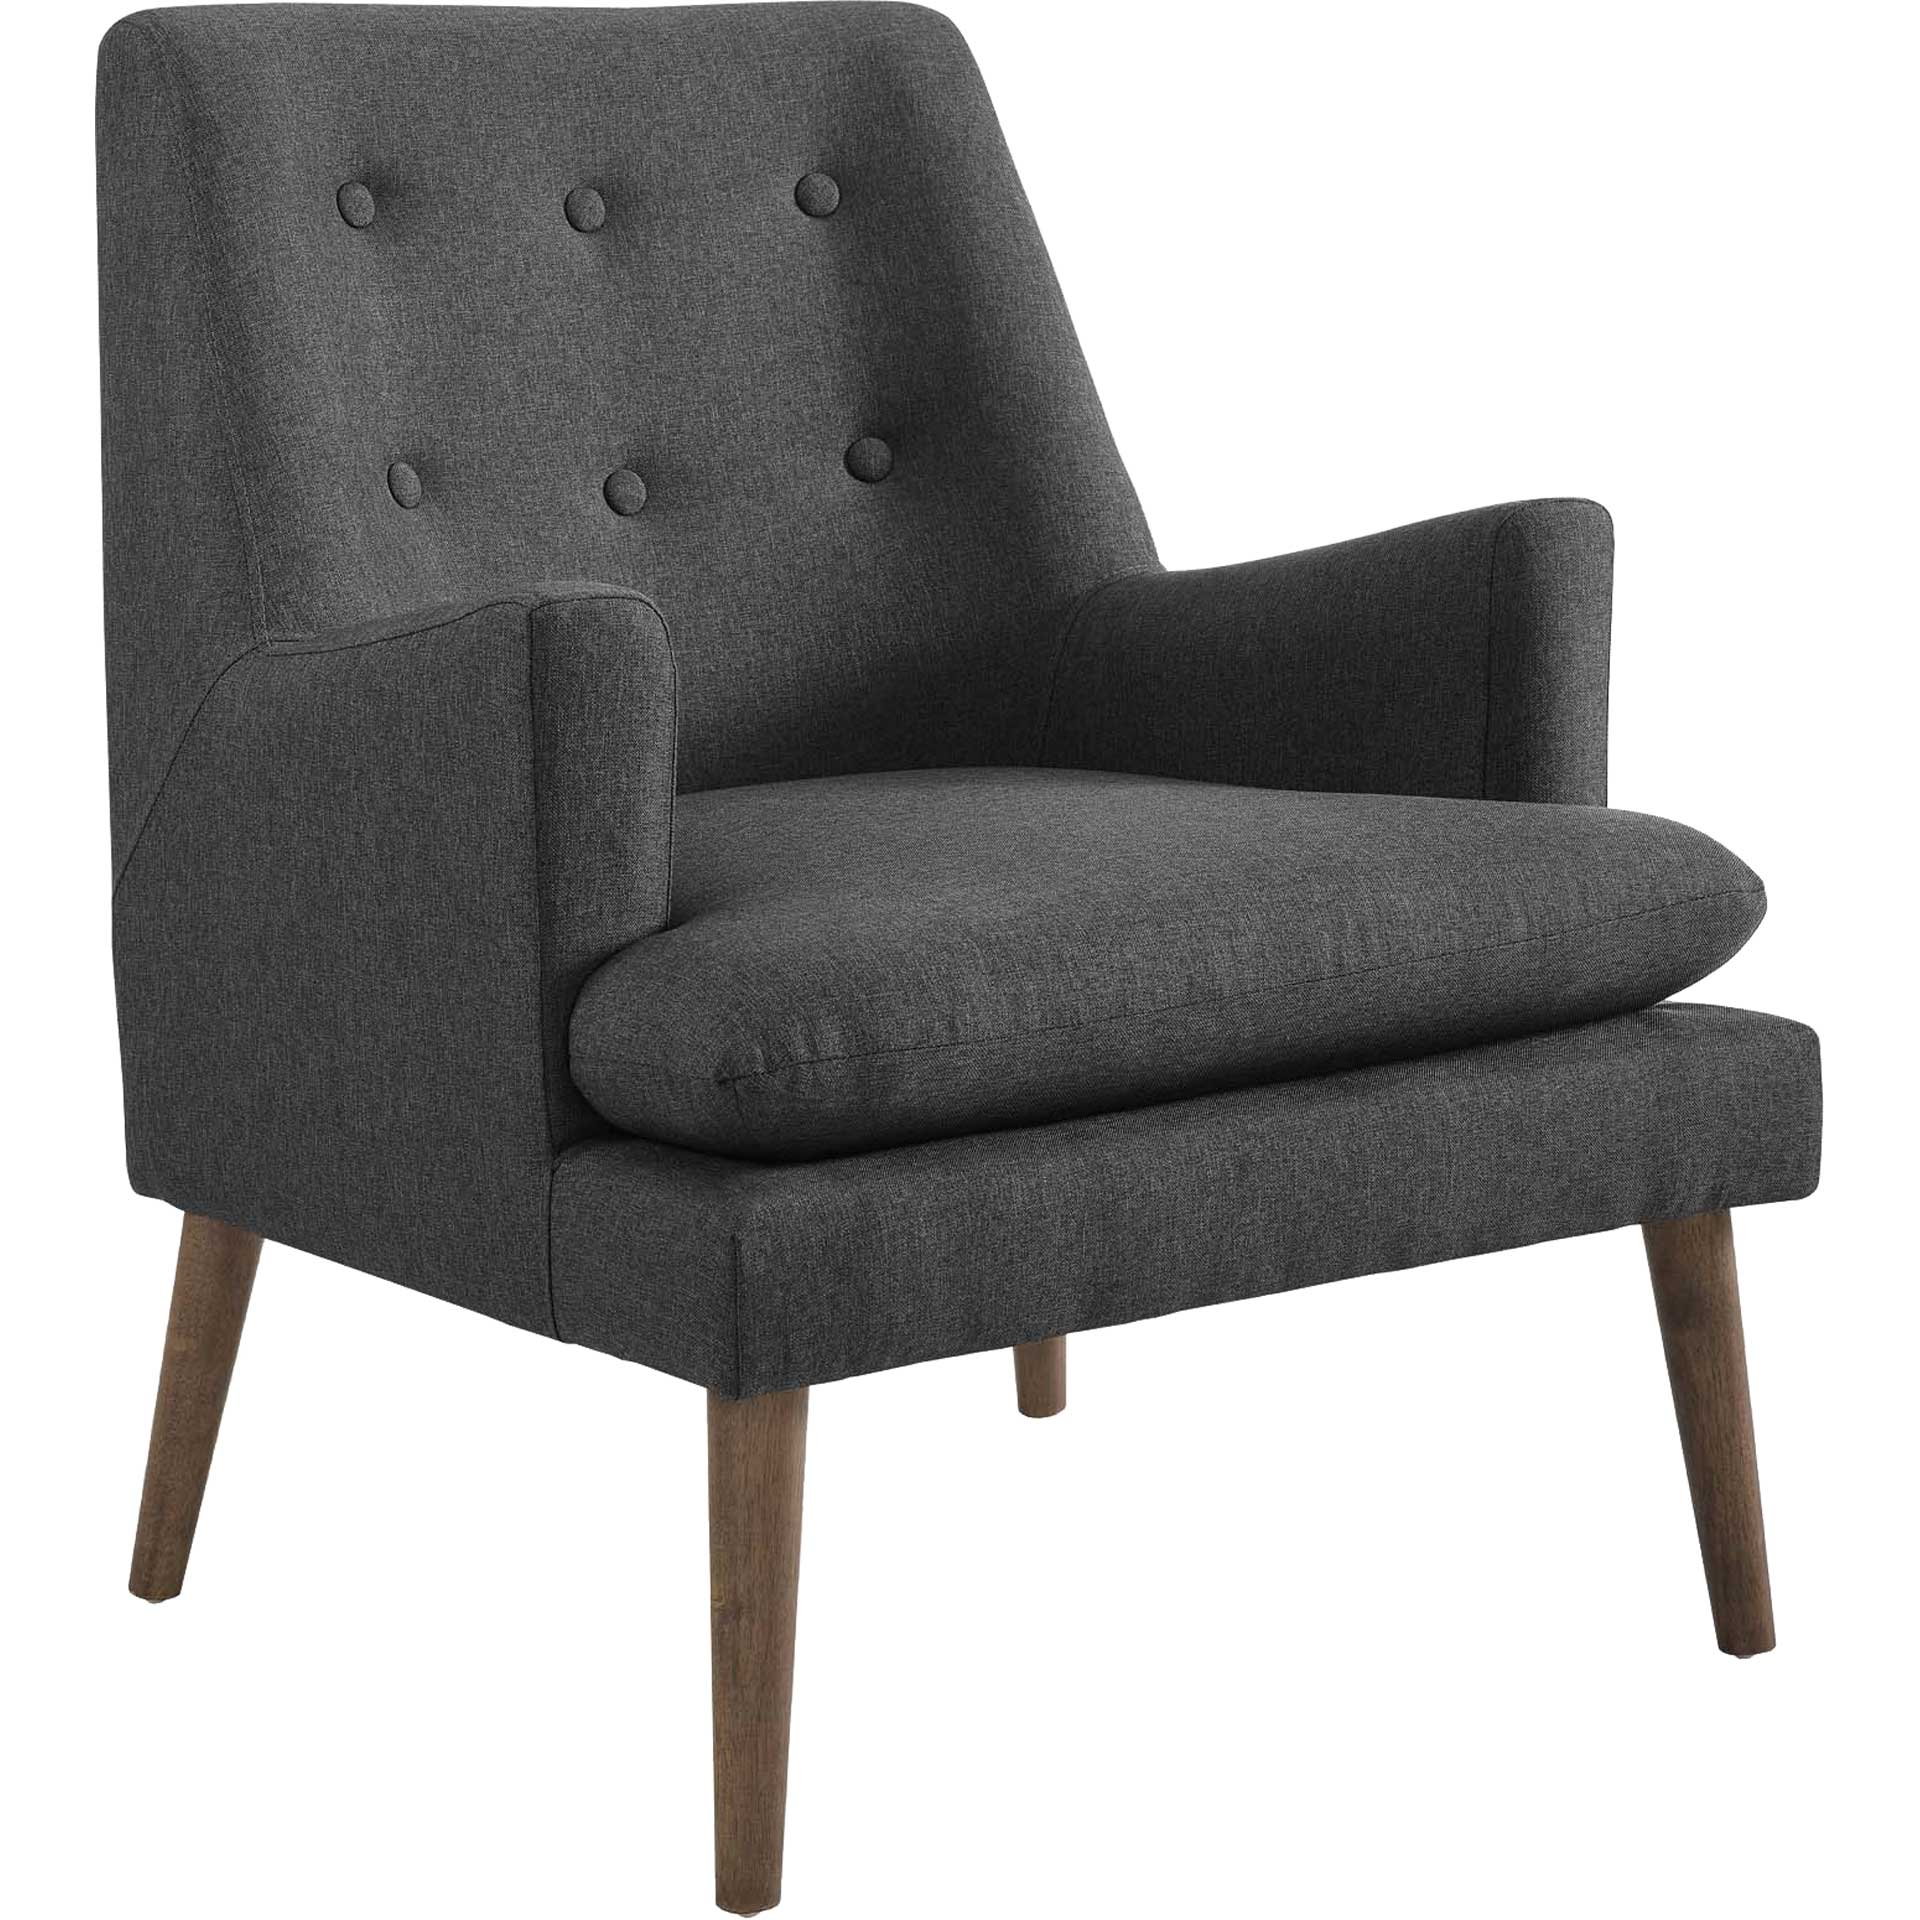 Lucas Upholstered Lounge Chair Gray